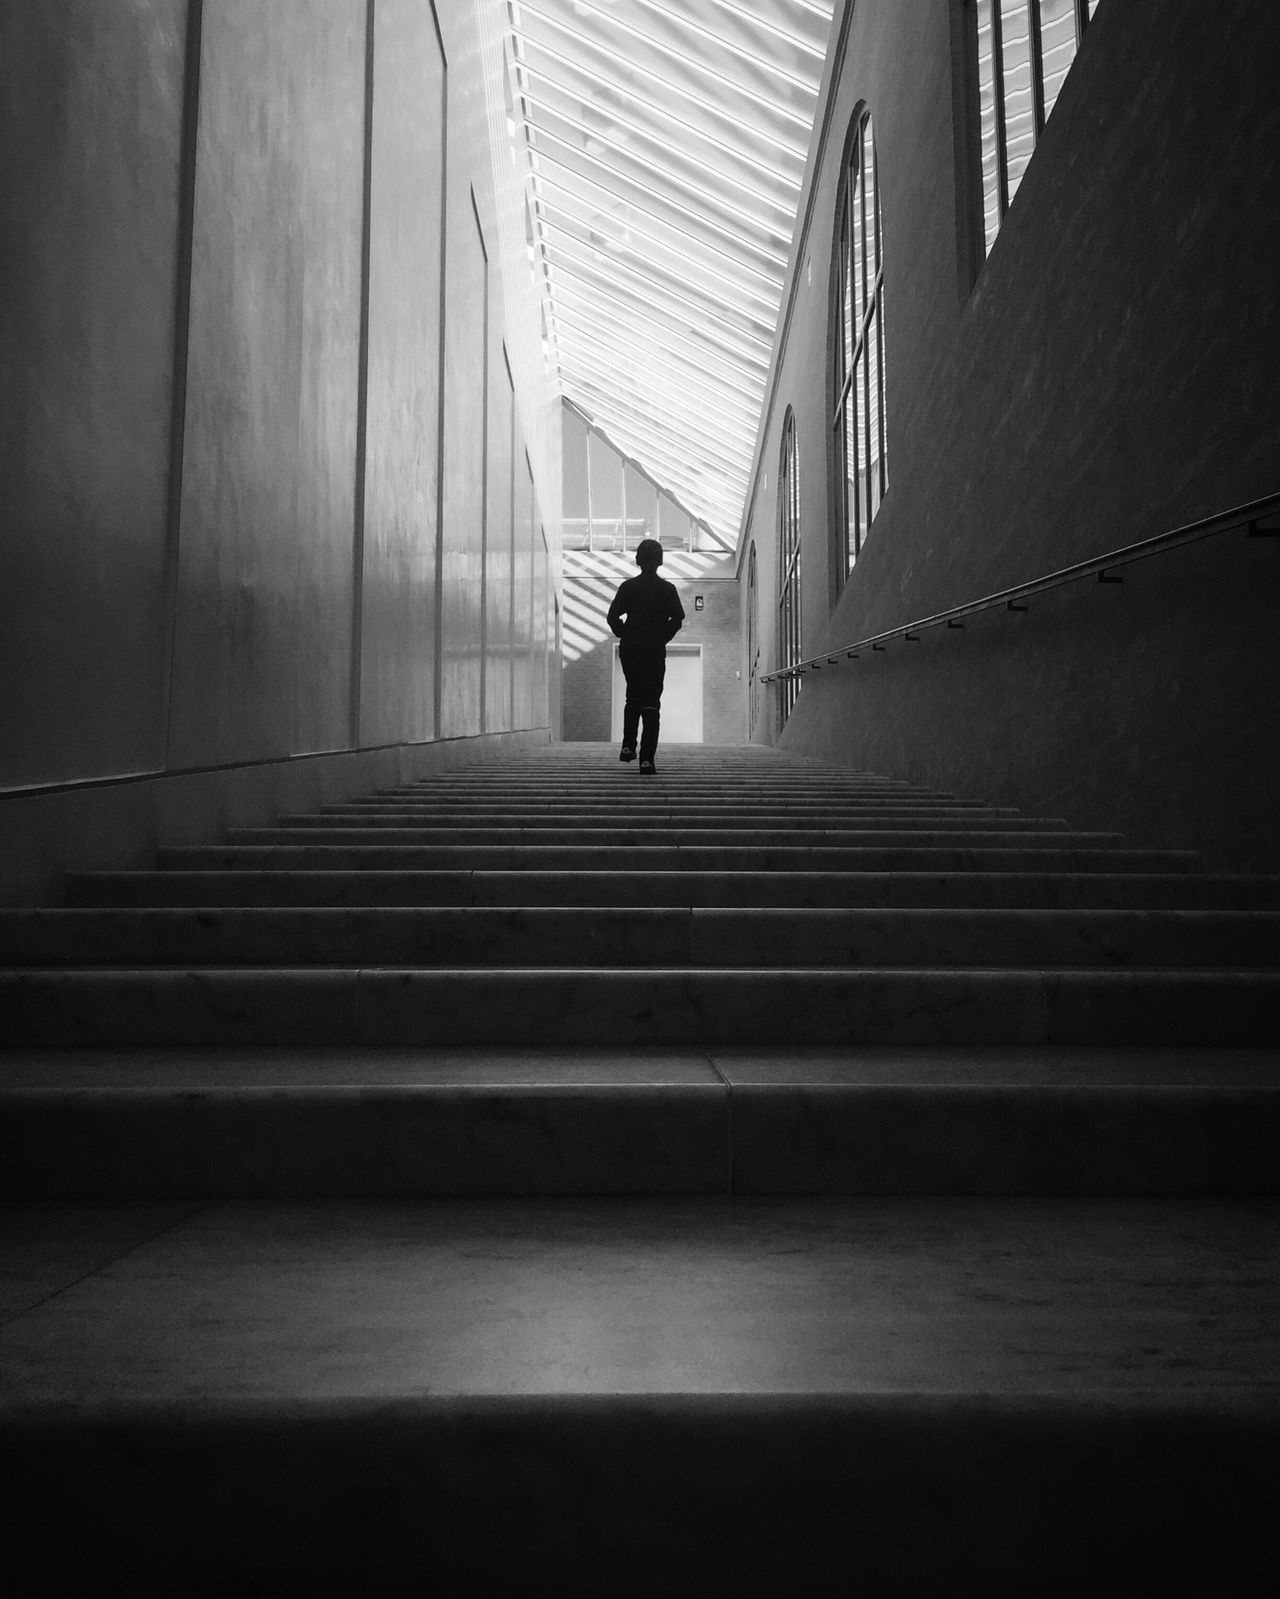 Architecture Black And White Monochrome Silhouette Shootermag EyeEm Best Shots - Black + White Darkness And Light